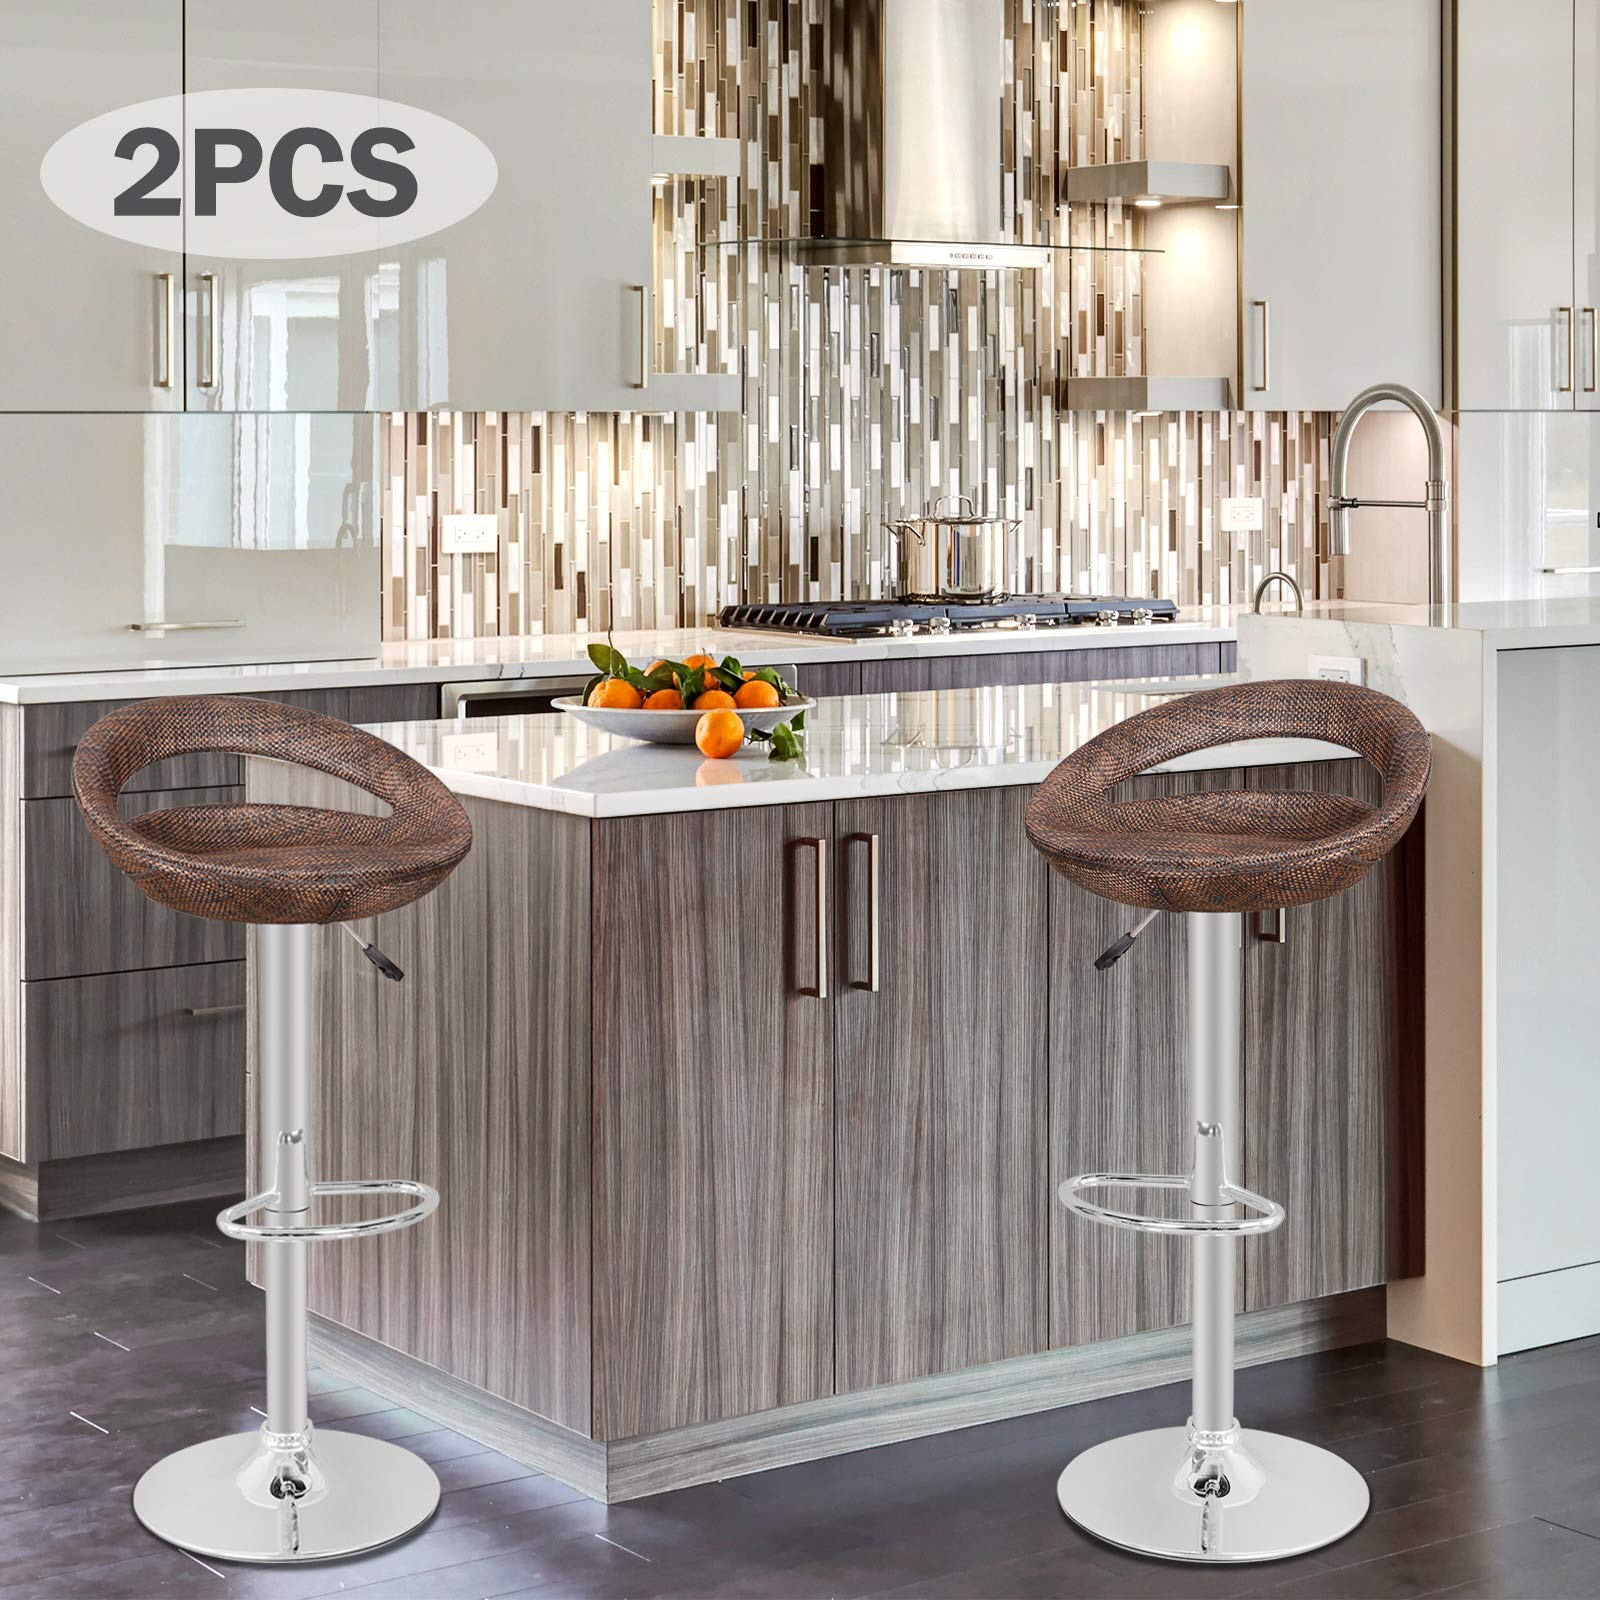 Nova Microdermabrasion Adjustable Pub Swivel Barstool All Weather Hydraulic Patio Barstool Indoor/Outdoor W/Open Back and Chrome Footrest, 2pcs by Nova Microdermabrasion